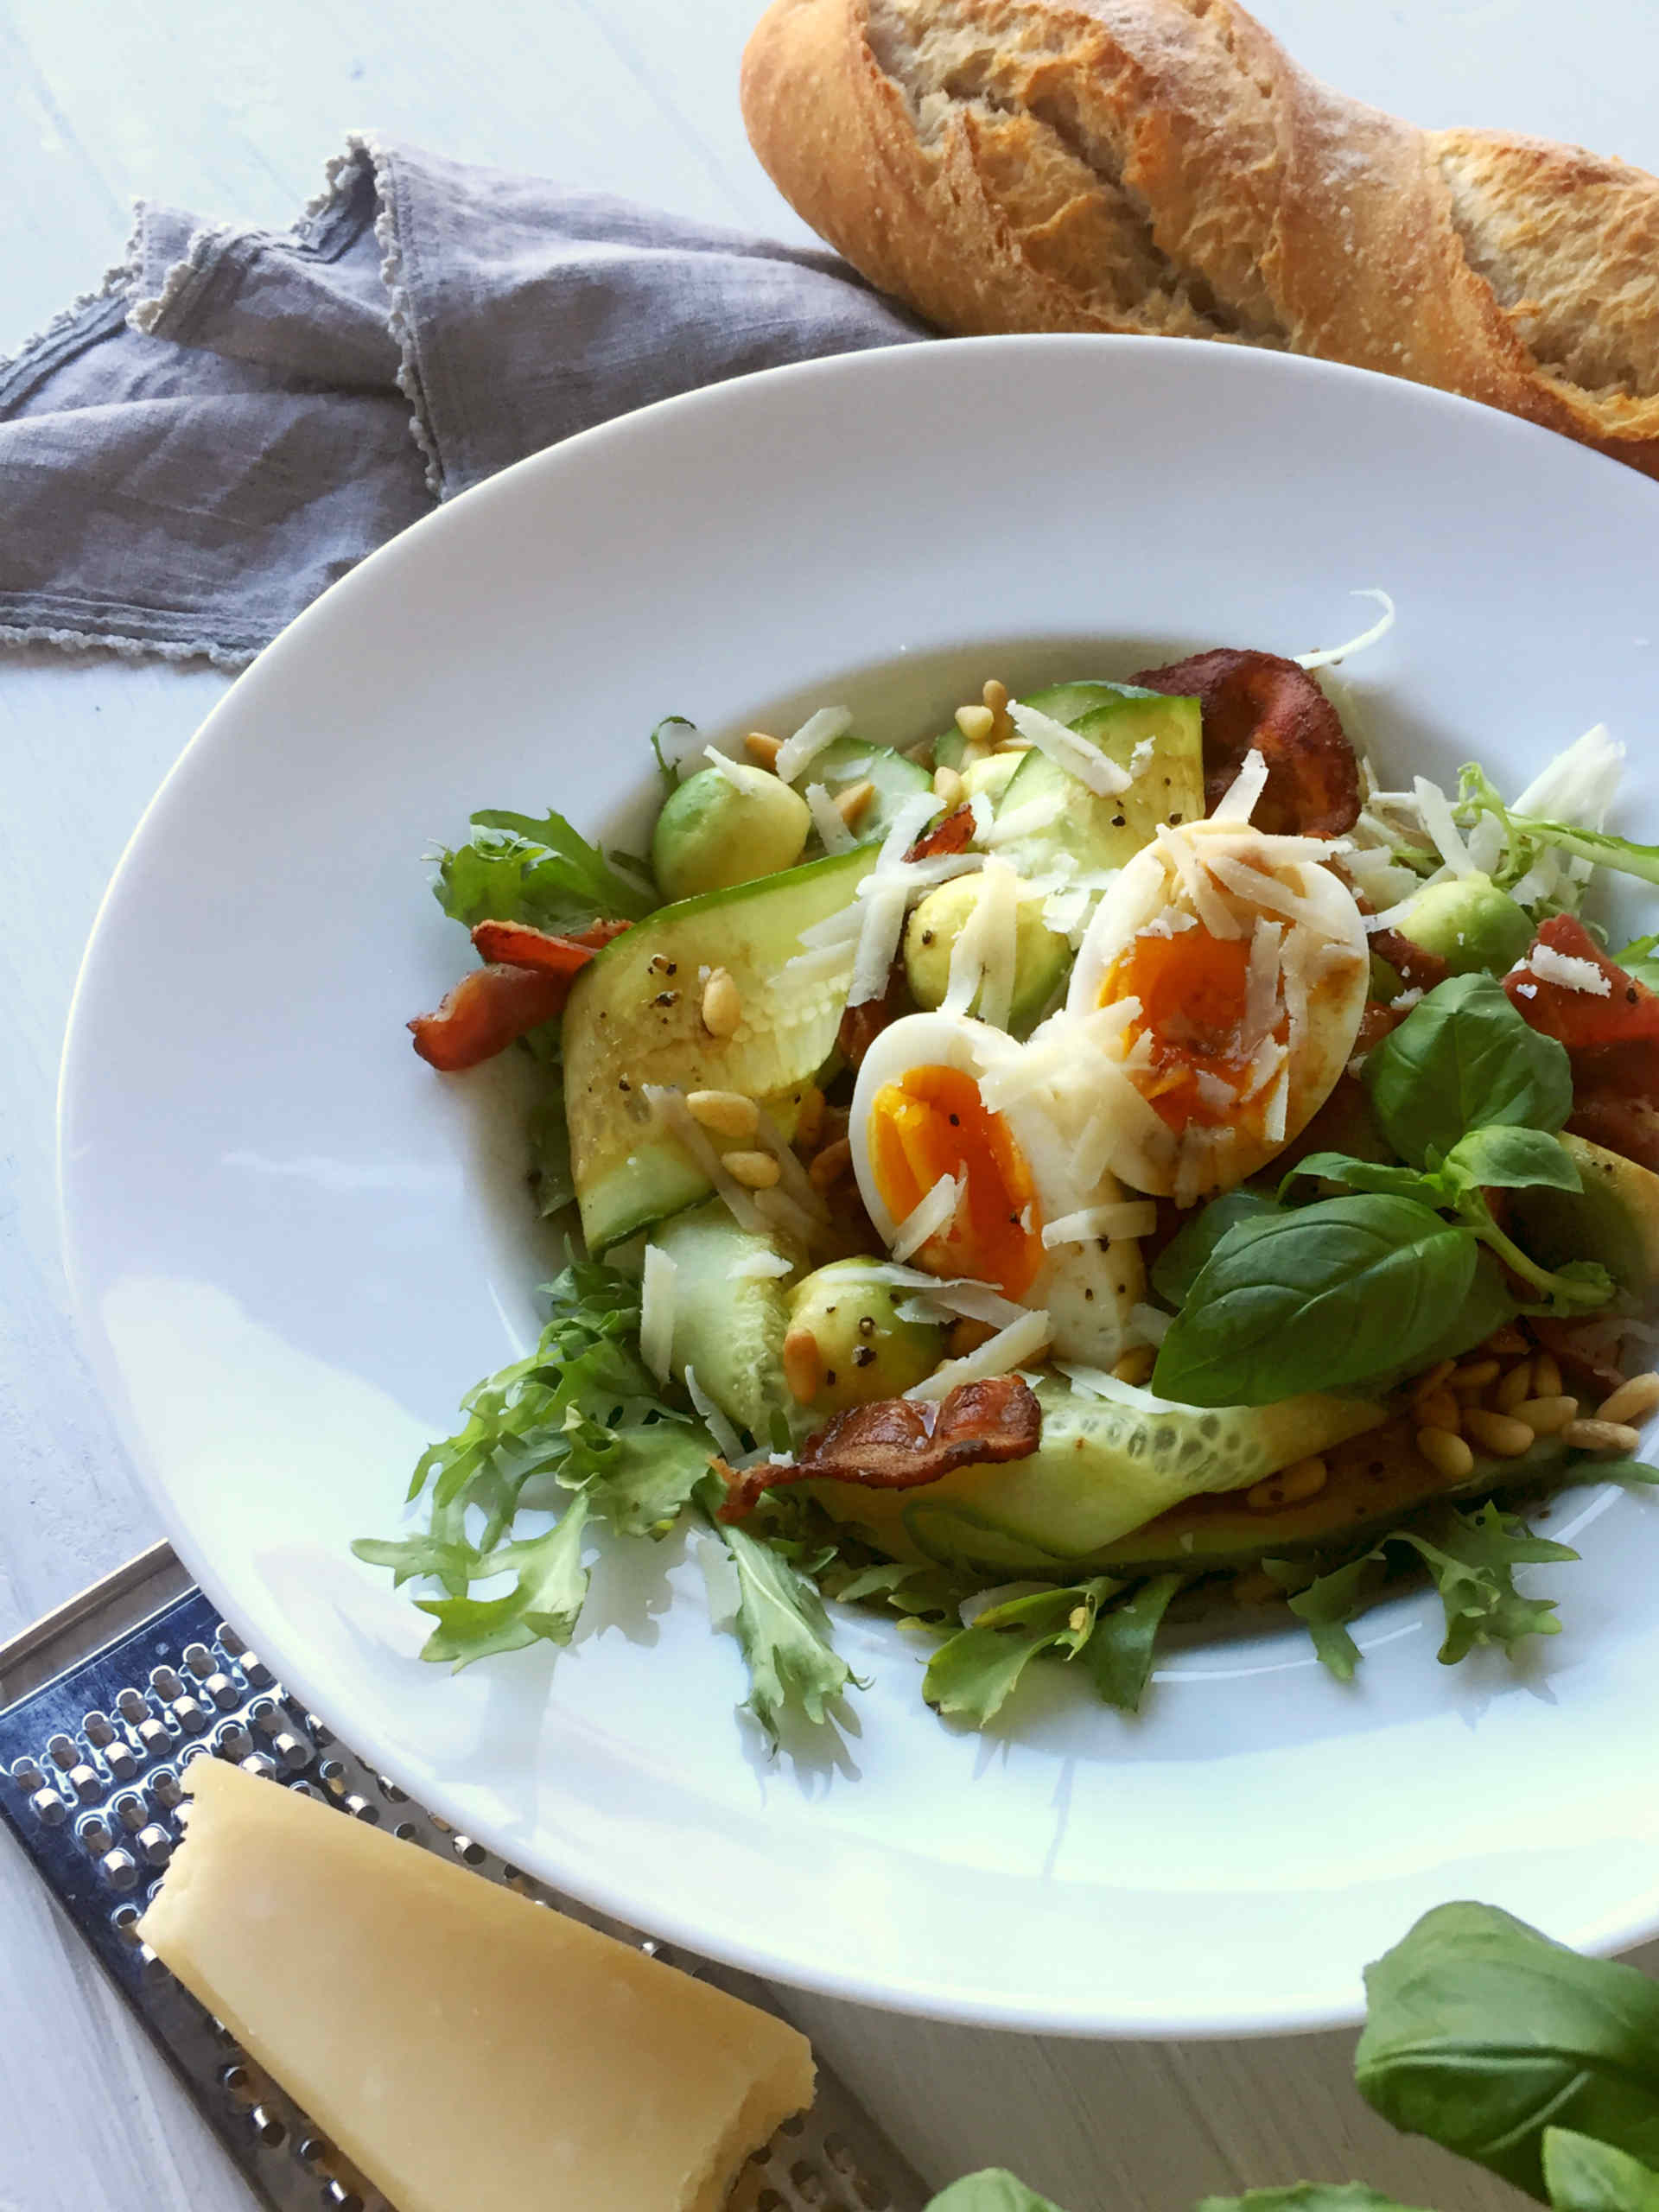 Avocado & Bacon Salad with Parmesan